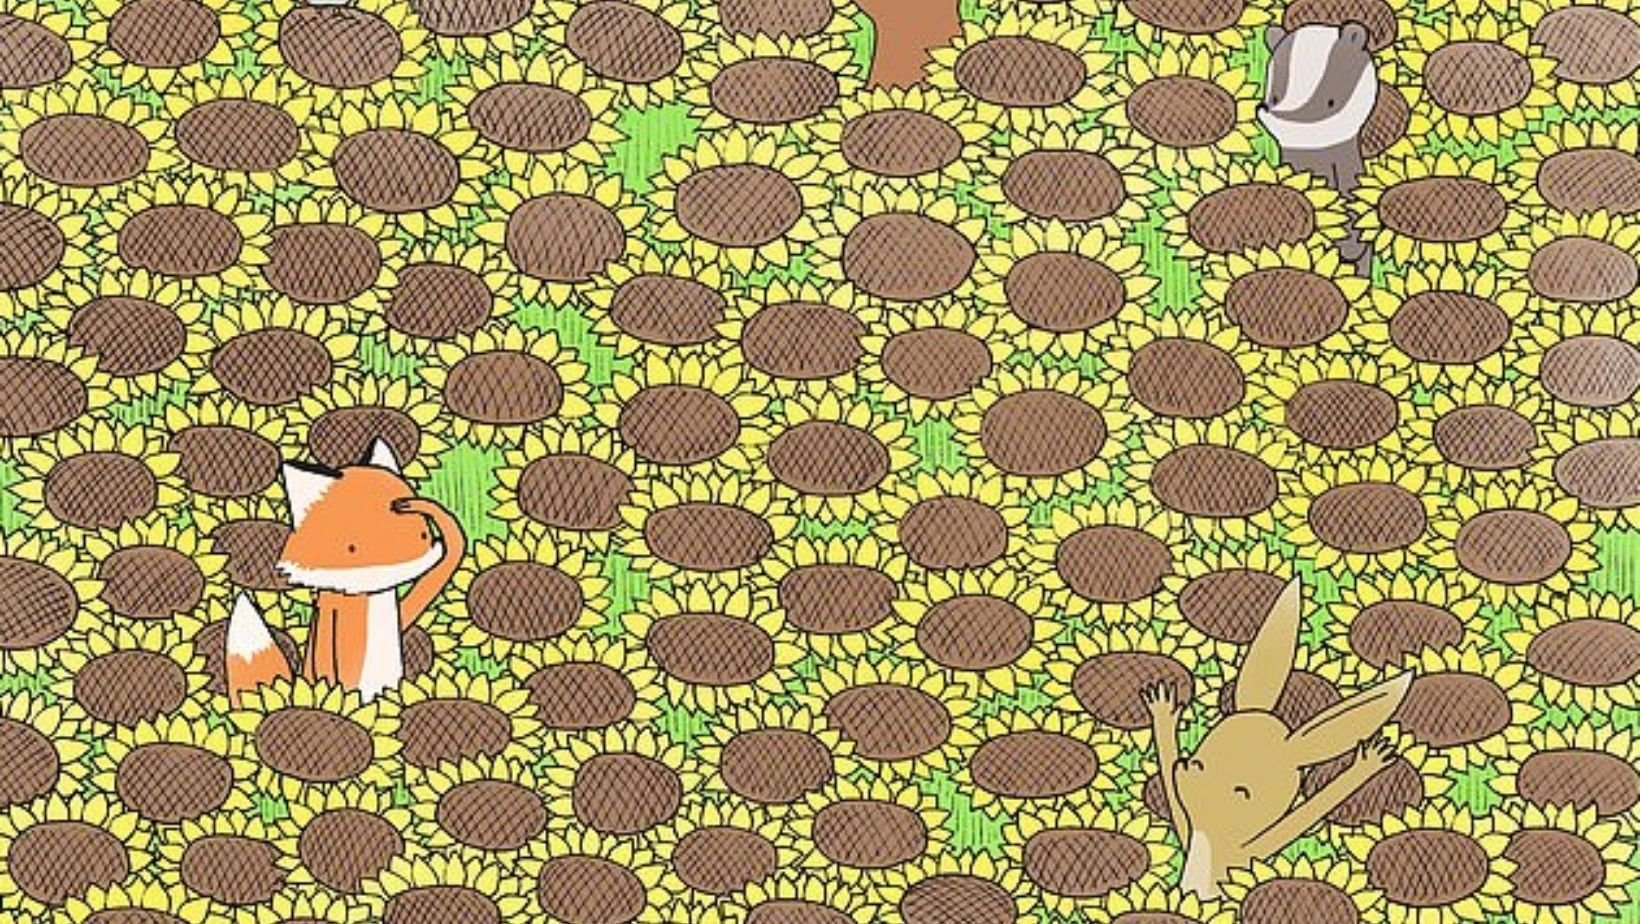 small joys thumbnail 24.jpg?resize=412,232 - How Fast Can You Spot The Hidden Butterfly In This Photo?